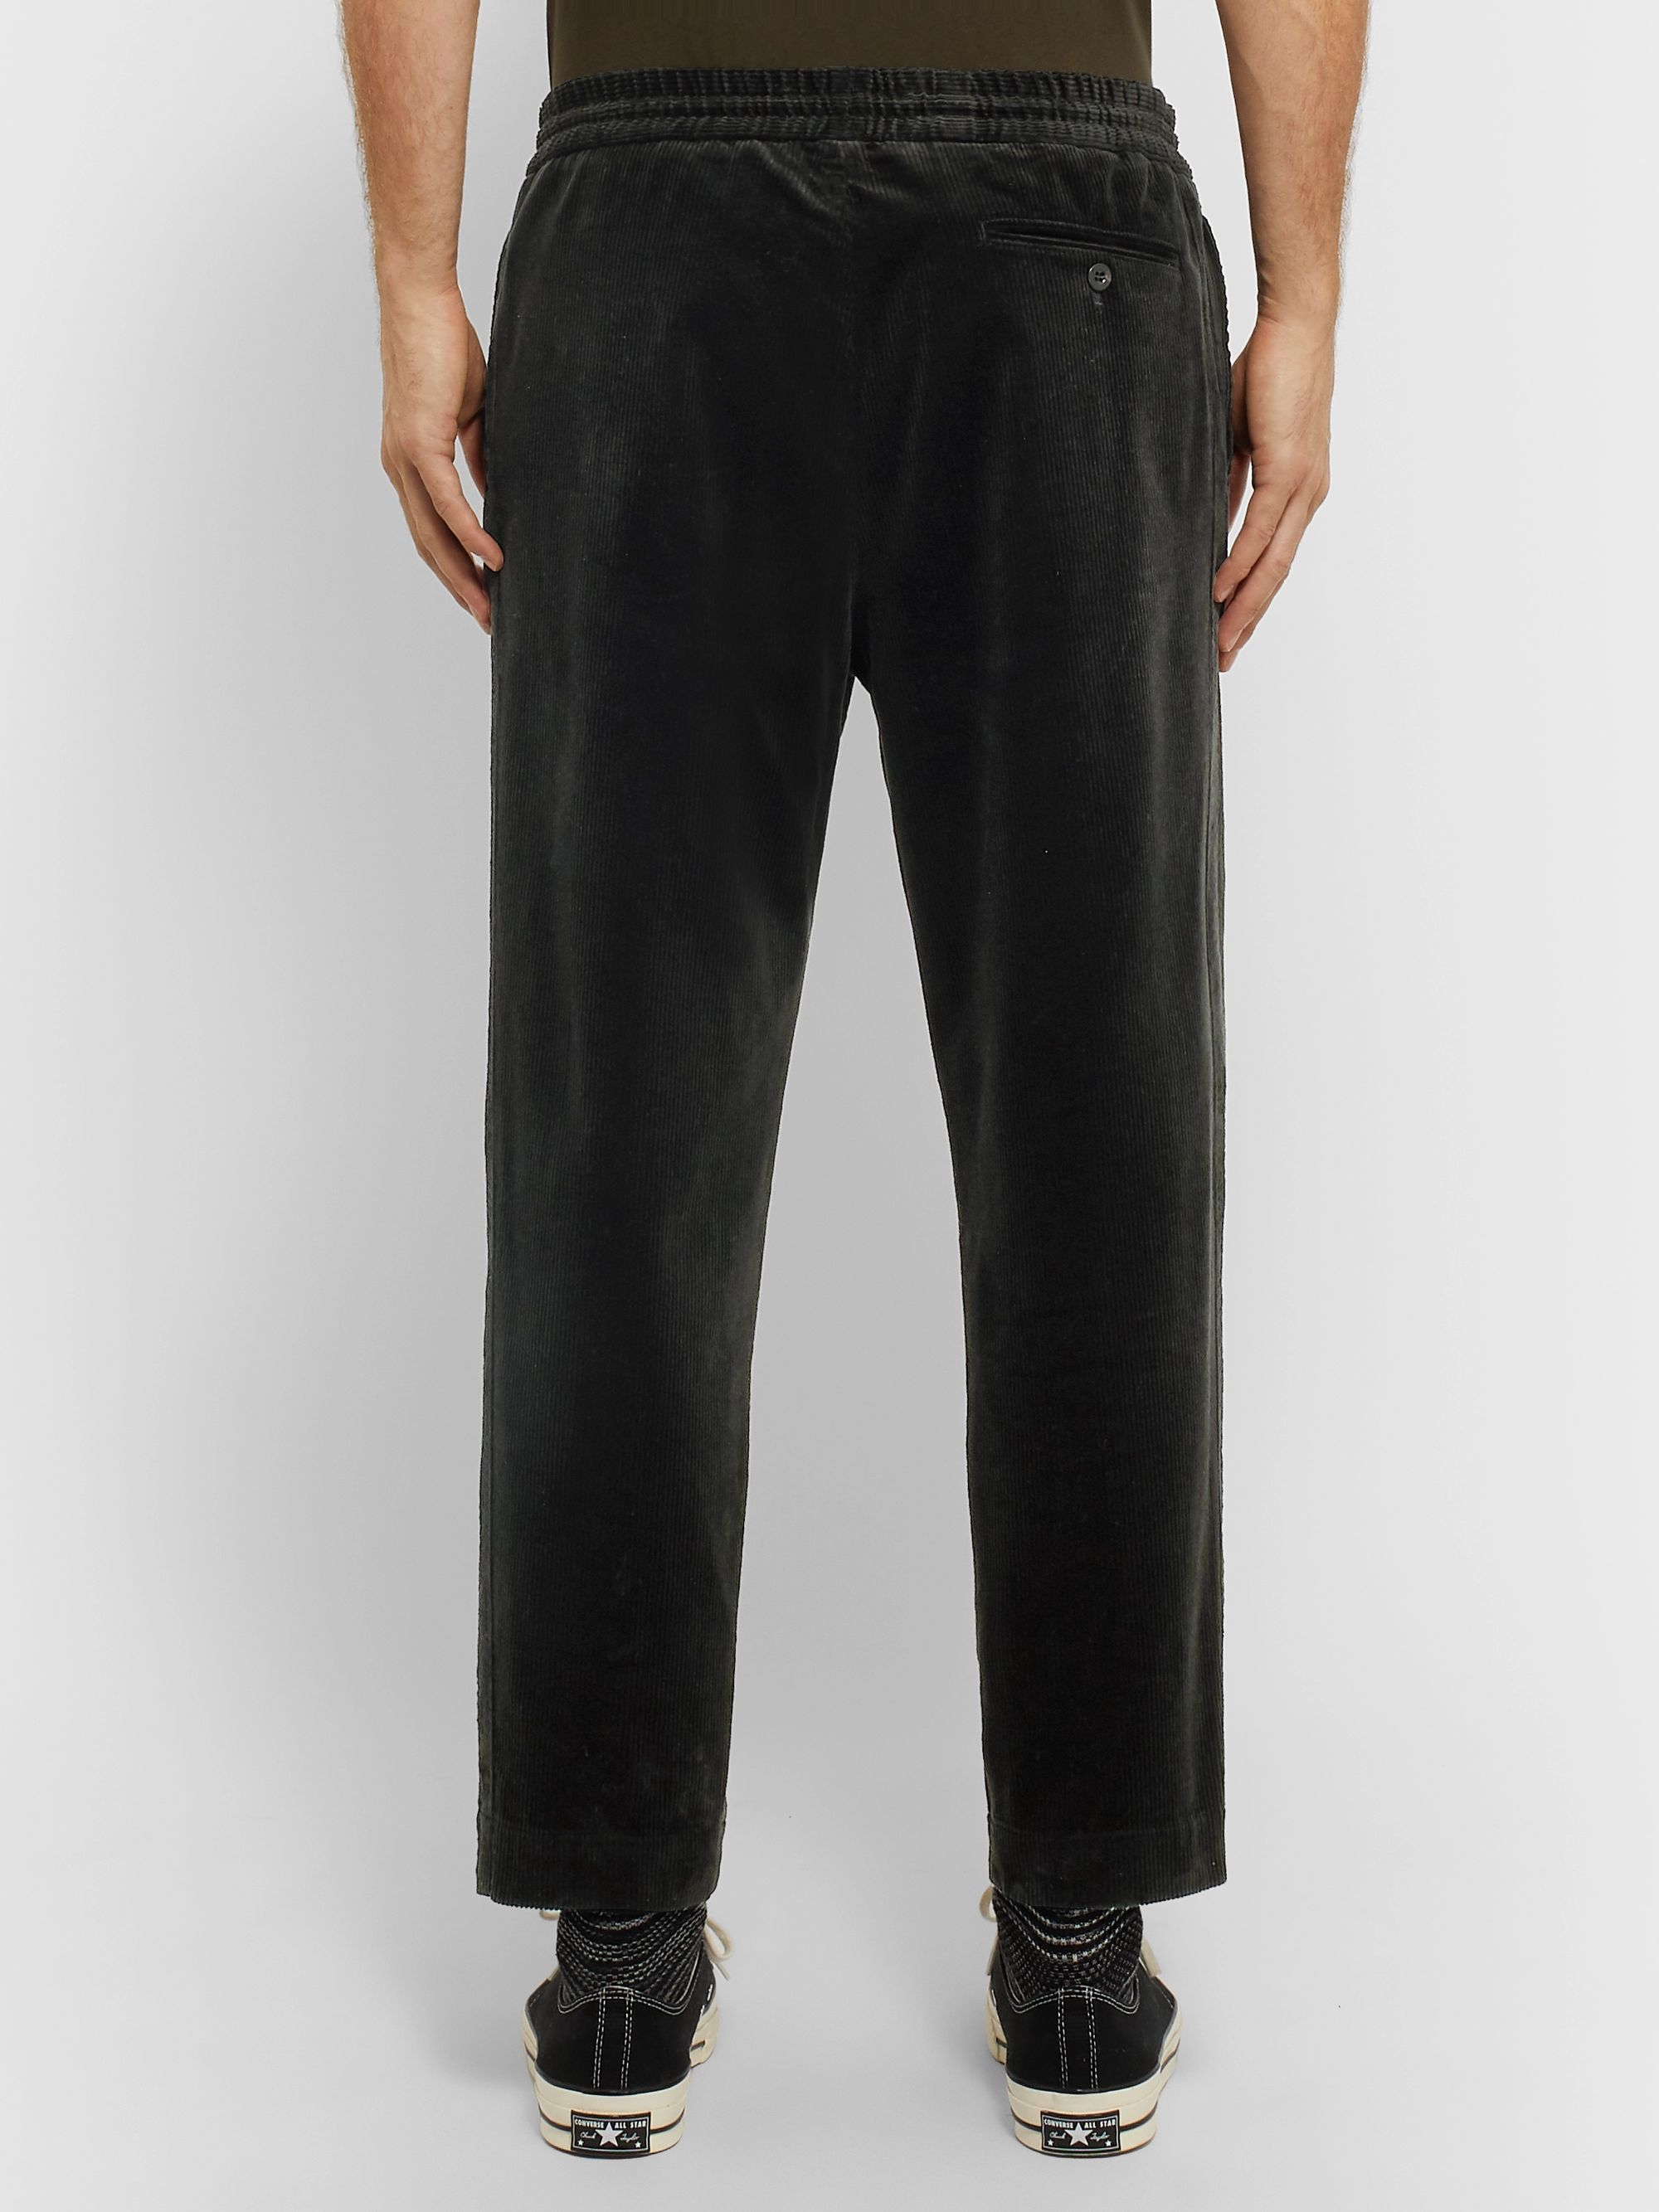 Mr P. Slim-Fit Cotton-Corduroy Drawstring Trousers